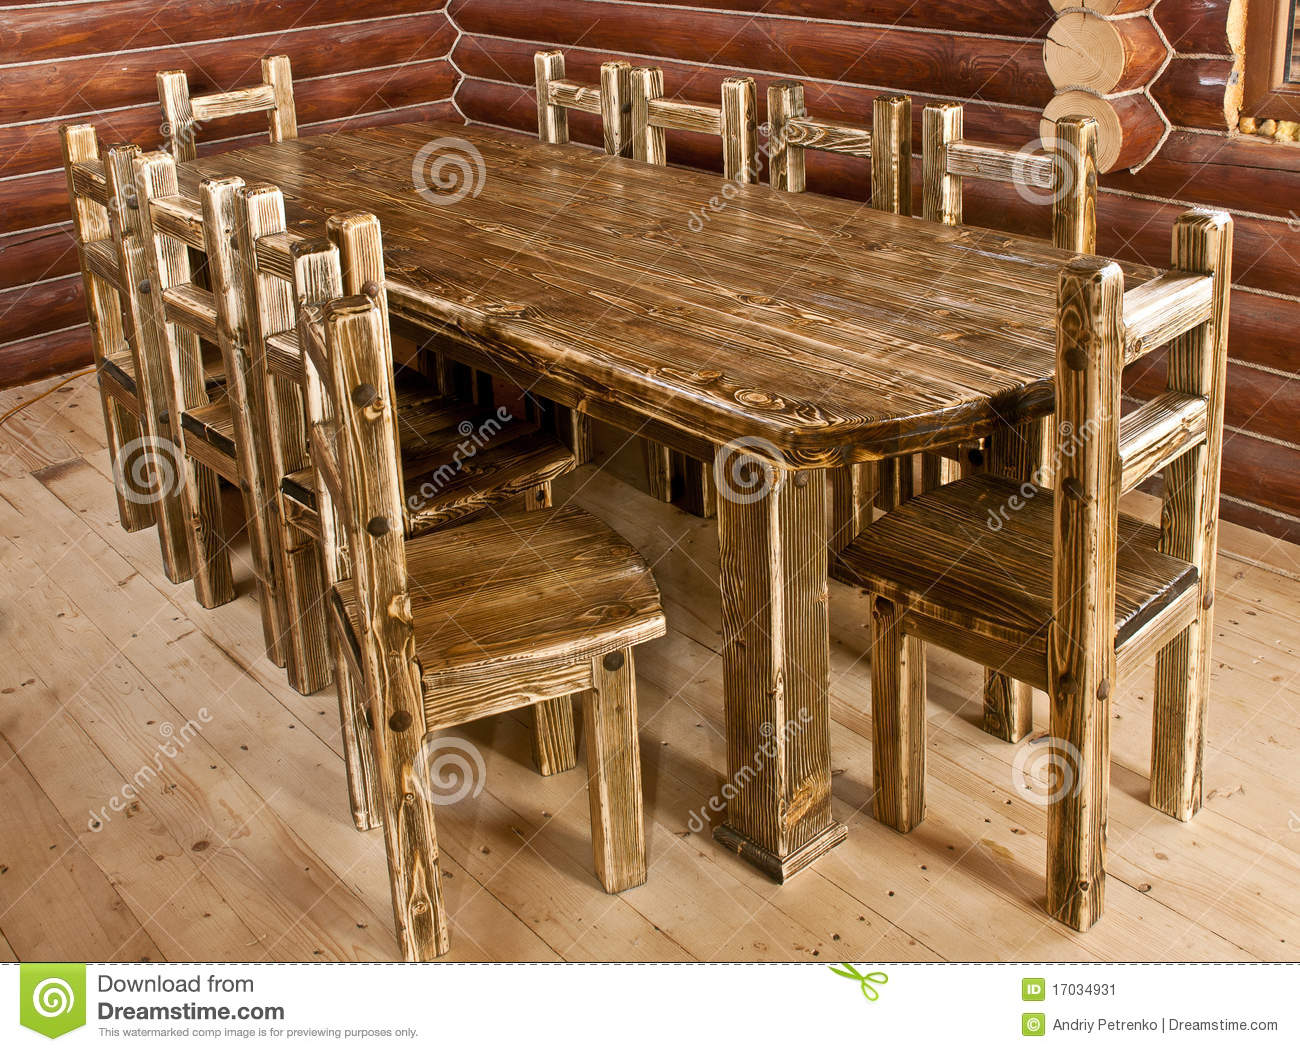 Handmade Large Kitchen Table Stock Image - Image of large ...